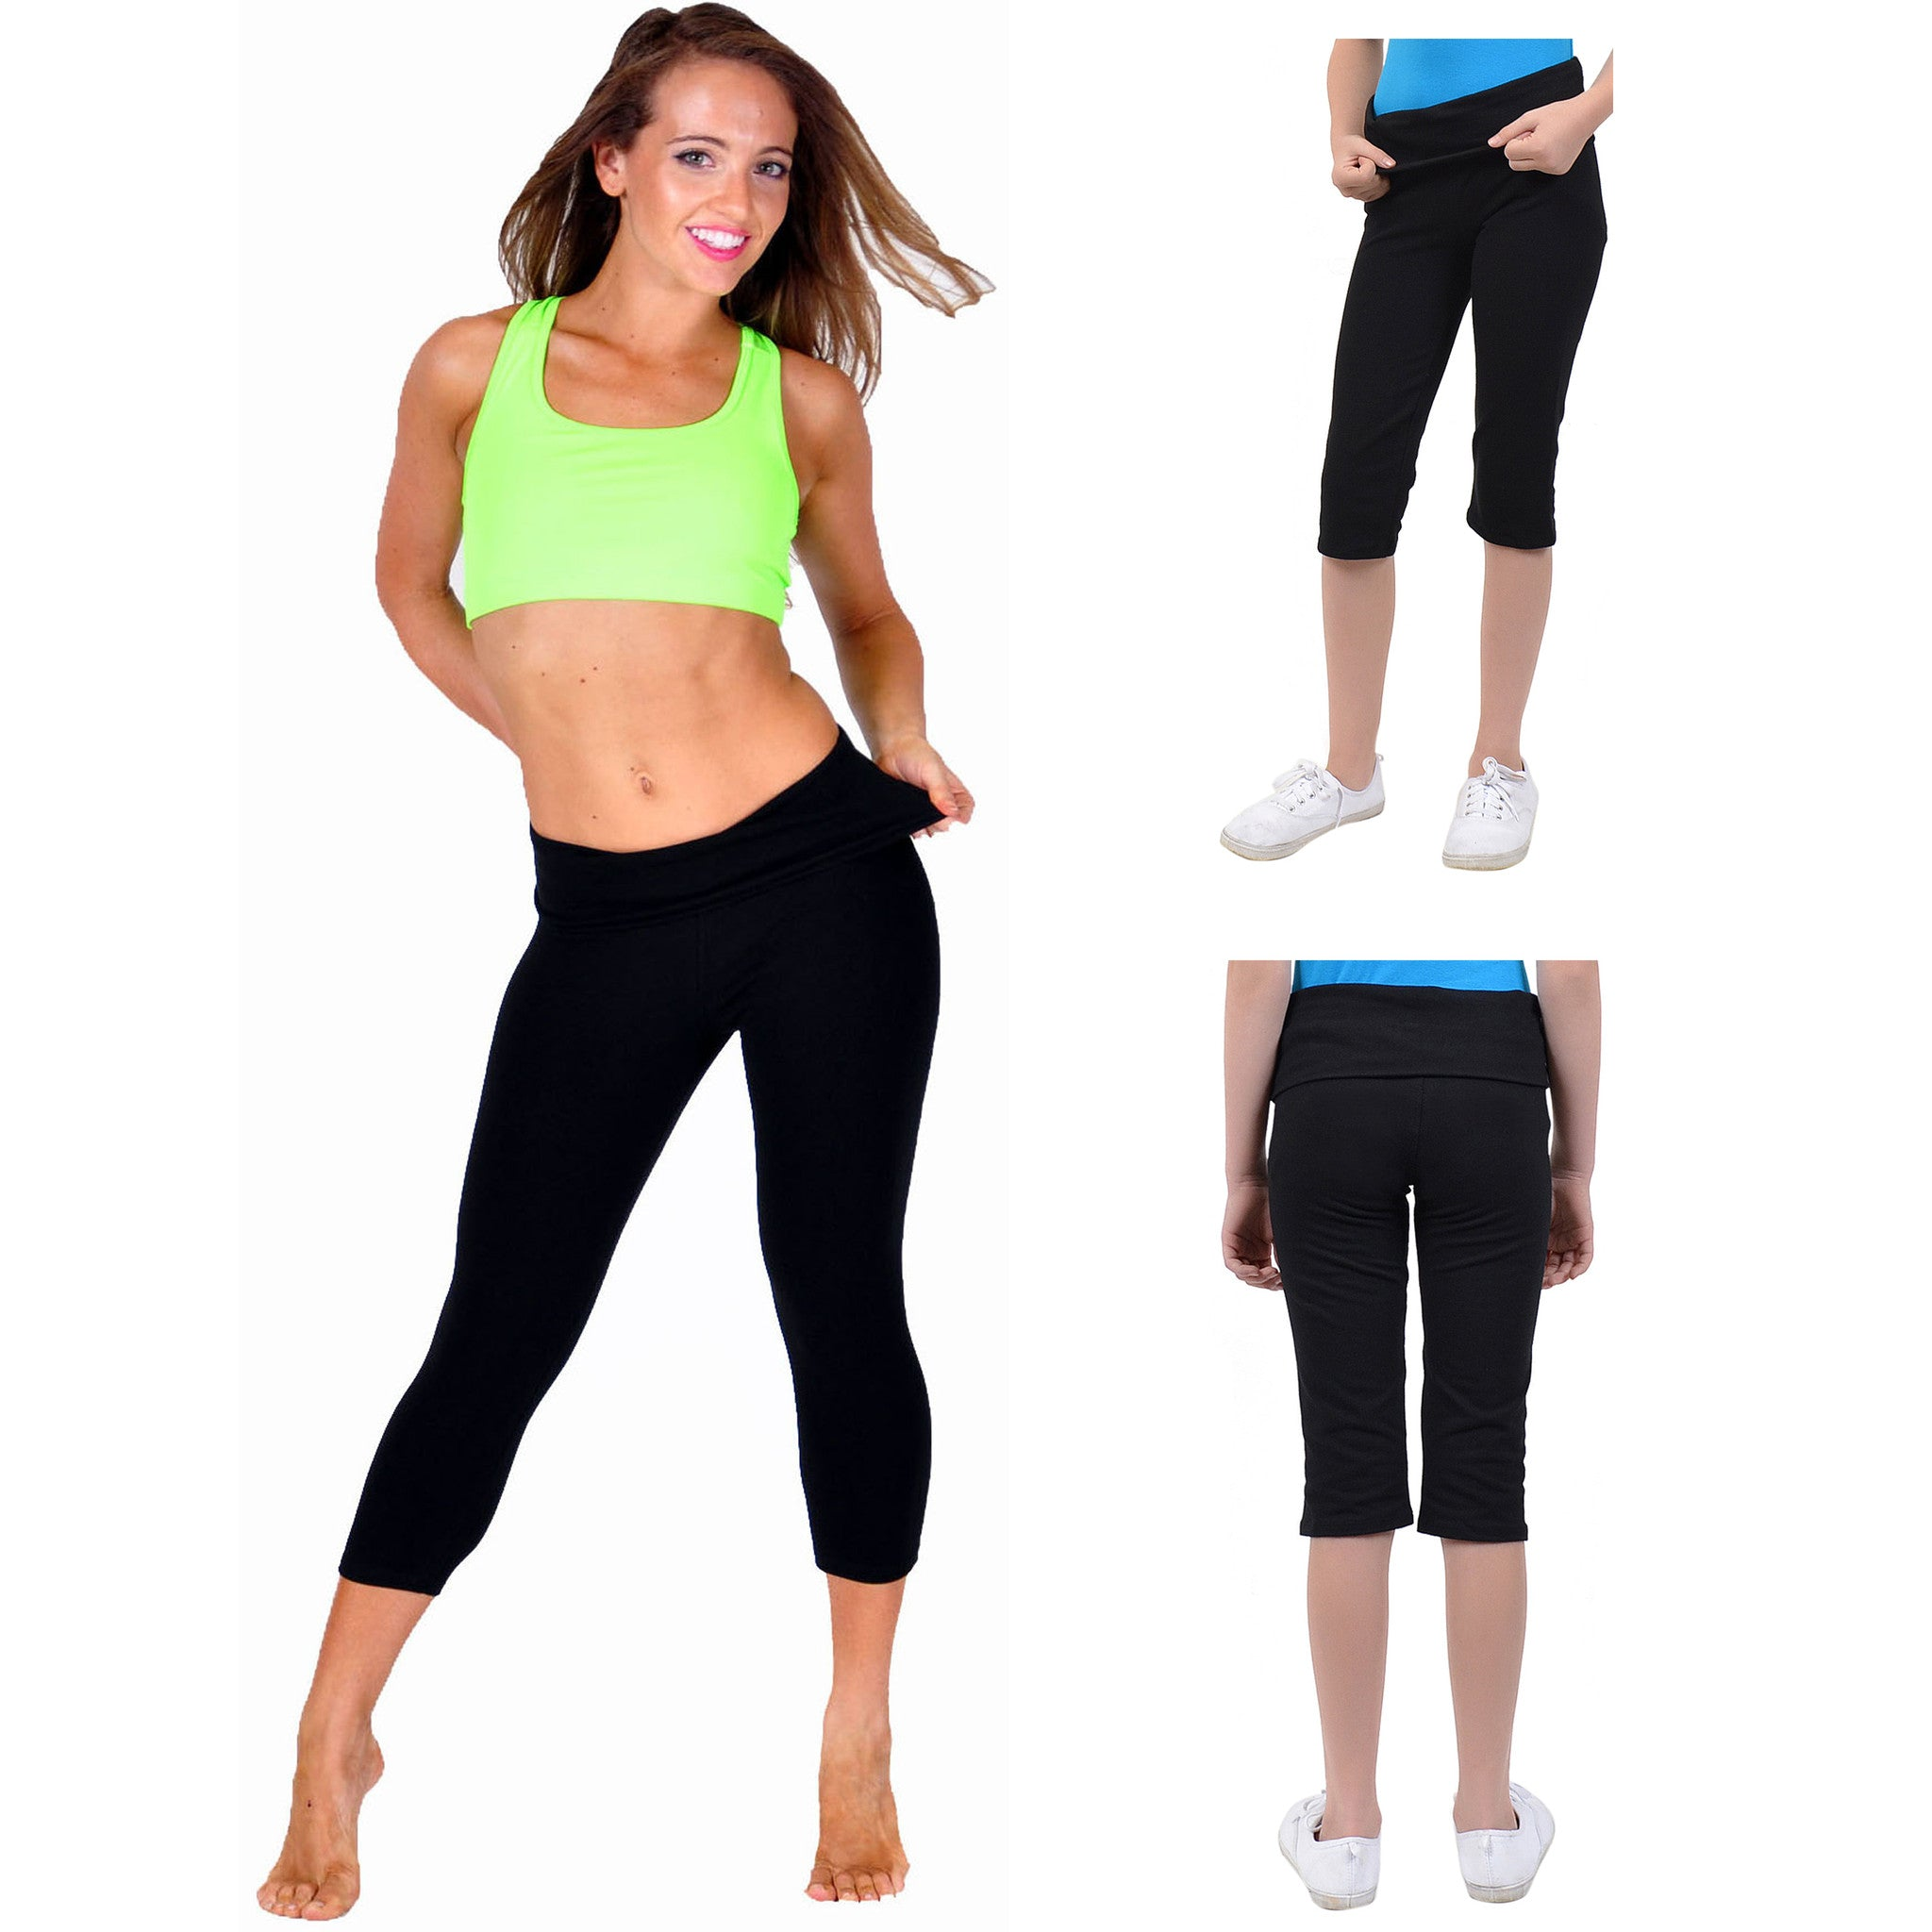 Teamwear Foldover Trailblazer Capri Leggings